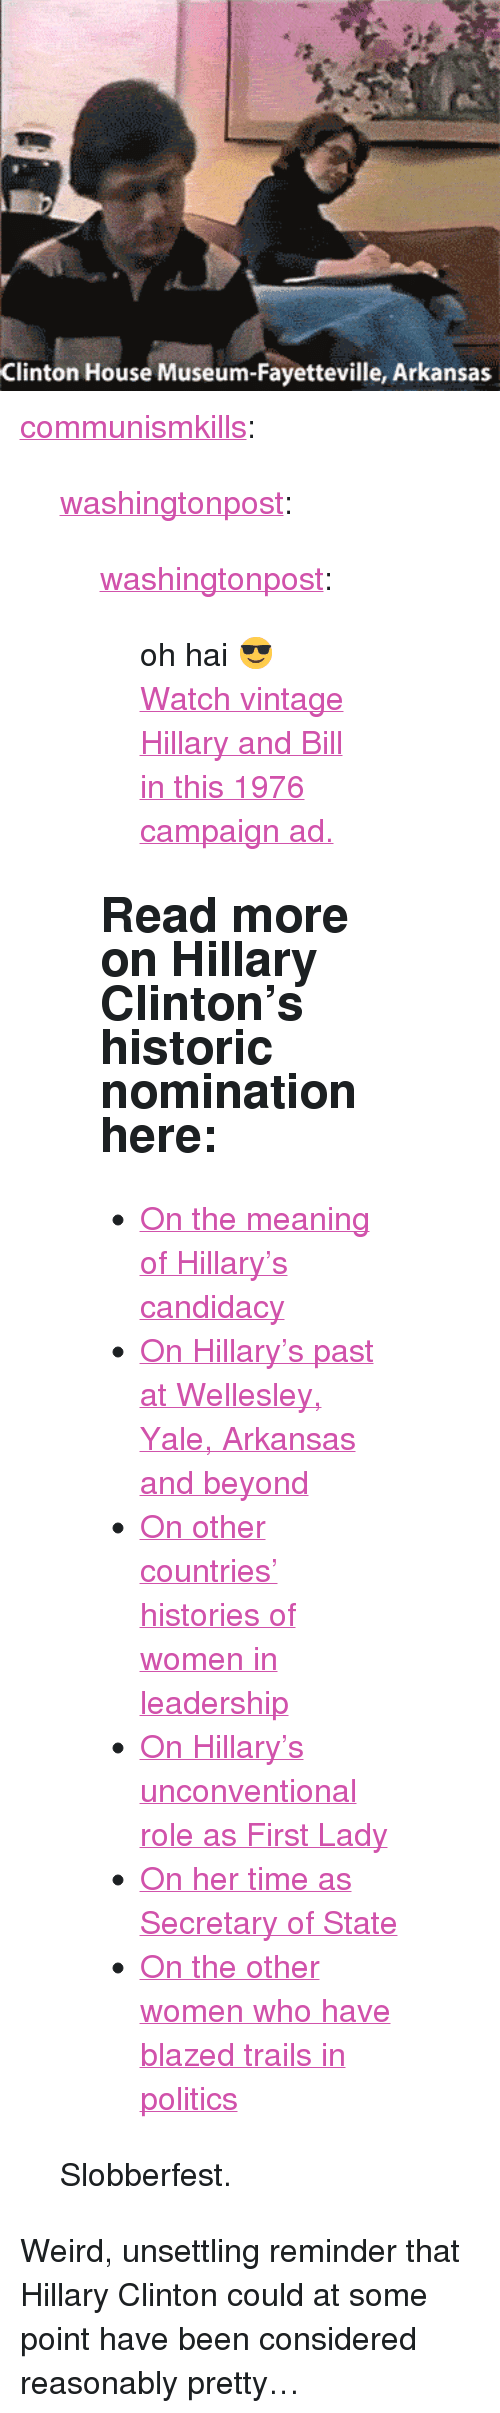 """Communismkills: Clinton House Museum-Fayetteville, Arkansas <p><a href=""""http://communismkills.tumblr.com/post/148064531868/washingtonpost-washingtonpost-oh-hai"""" class=""""tumblr_blog"""">communismkills</a>:</p><blockquote> <p><a class=""""tumblr_blog"""" href=""""http://washingtonpost.tumblr.com/post/148064368032"""">washingtonpost</a>:</p> <blockquote> <p><a class=""""tumblr_blog"""" href=""""http://washingtonpost.tumblr.com/post/133597363857"""">washingtonpost</a>:</p> <blockquote> <p>oh hai😎</p> <p><a href=""""https://www.washingtonpost.com/video/politics/watch-vintage-hillary-and-bill-in-this-1976-campaign-ad/2015/11/19/6ba78086-8d58-11e5-934c-a369c80822c2_video.html"""">Watch vintage Hillary and Bill in this 1976 campaign ad.</a><br/></p> </blockquote> <h2>Read more on Hillary Clinton's historic nomination here: </h2> <ul><li> <a href=""""https://www.washingtonpost.com/politics/the-meaning-of-hillary-the-presumptive-2016-democratic-presidential-nominee/2016/06/06/1b99bb5c-2b2a-11e6-9b37-42985f6a265c_story.html"""">On the meaning of Hillary's candidacy</a><br/></li> <li><a href=""""https://www.washingtonpost.com/politics/the-rising-lawyers-detour-to-arkansas/2016/07/22/93f8d302-503d-11e6-a7d8-13d06b37f256_story.html?tid=sm_tw"""">On Hillary's past at Wellesley, Yale, Arkansas and beyond</a></li> <li><a href=""""https://www.washingtonpost.com/news/the-fix/wp/2016/07/26/women-have-led-more-than-60-countries-but-hillary-clintons-rise-is-rarer-than-it-might-seem/?tid=sm_tw"""">On other countries' histories of women in leadership</a></li> <li><a href=""""https://www.washingtonpost.com/politics/the-double-life-of-hillary-clinton/2016/07/06/bcc17496-43a5-11e6-88d0-6adee48be8bc_story.html"""">On Hillary's unconventional role as First Lady </a></li> <li><a href=""""https://www.washingtonpost.com/politics/hillary-clinton-remains-popular-for-her-time-as-secretary-of-state-viewed-apart-from-obama/2014/06/07/4bad6e62-ea61-11e3-b98c-72cef4a00499_story.html"""">On her time as Secretary of State</a></li> <li><a href=""""https://www.washingtonpos"""